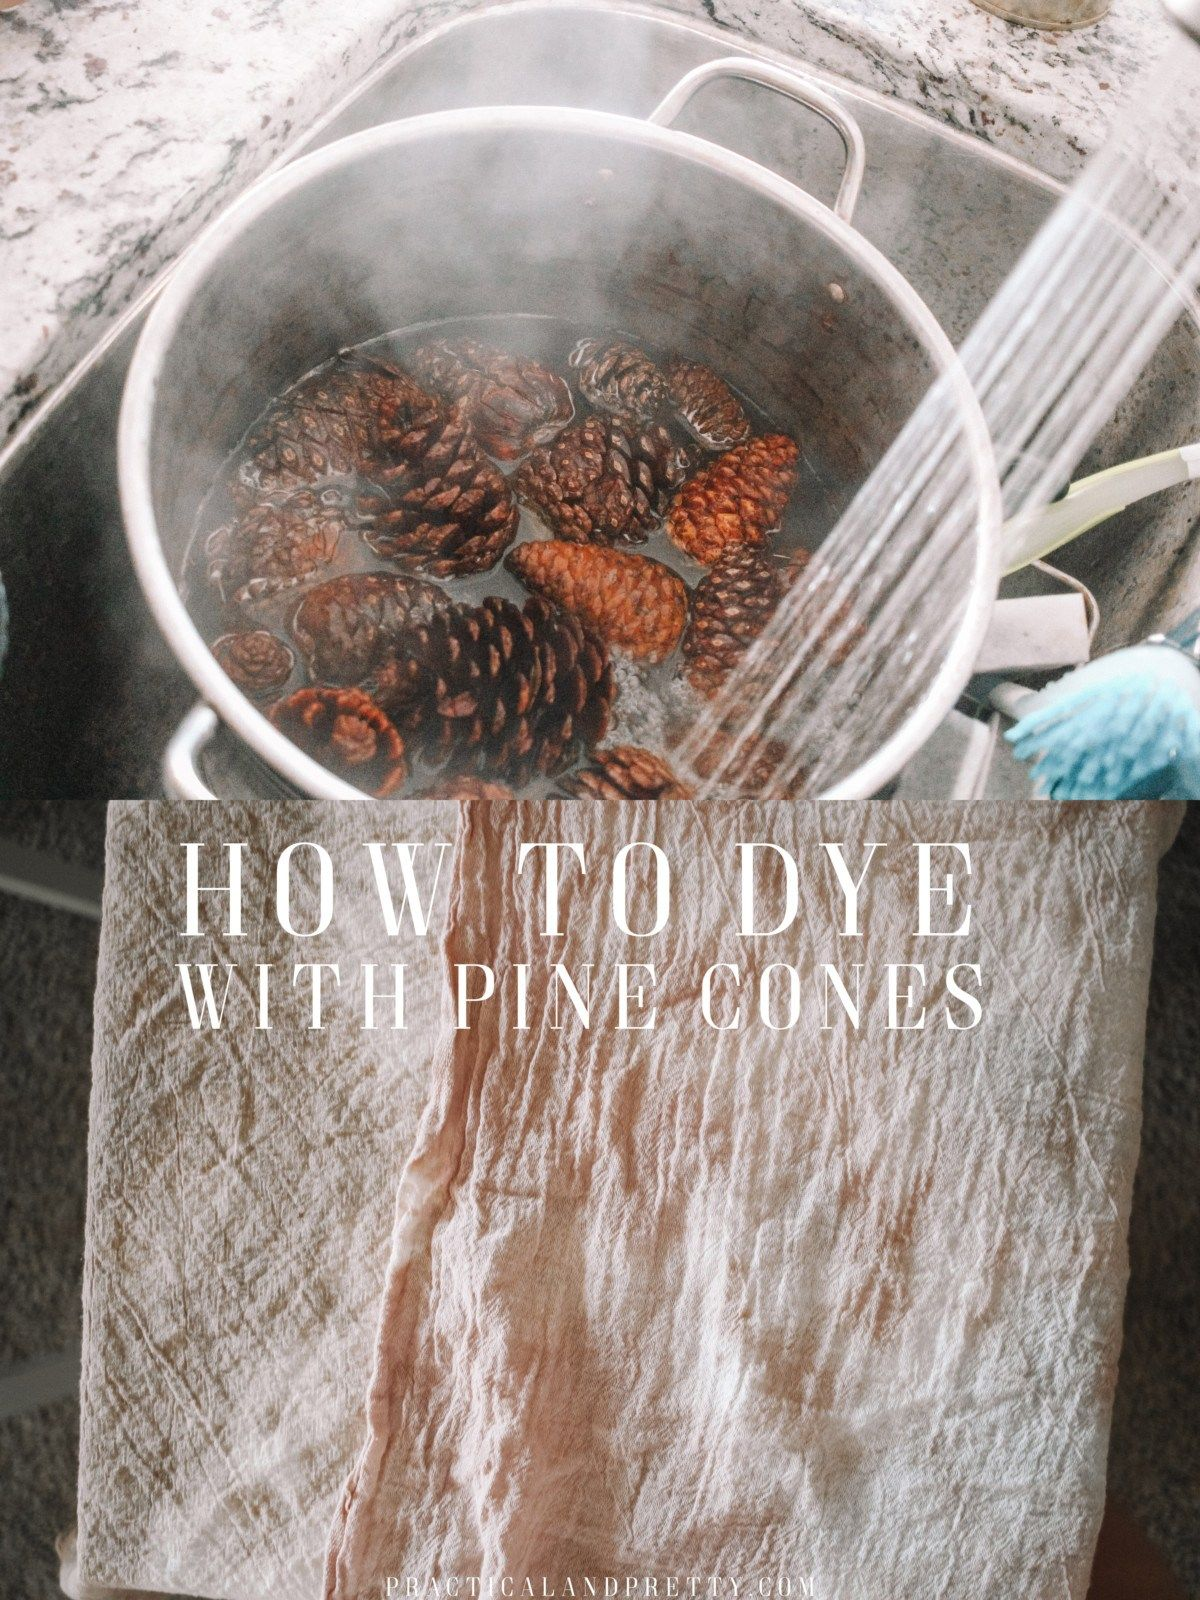 How to Dye with Pine Cones  Practical and Pretty is part of Natural dye fabric - Next time you see some pine cones gather them up and put together this easy dye vat to make a beautiful pink color or a nice gray with an iron bath